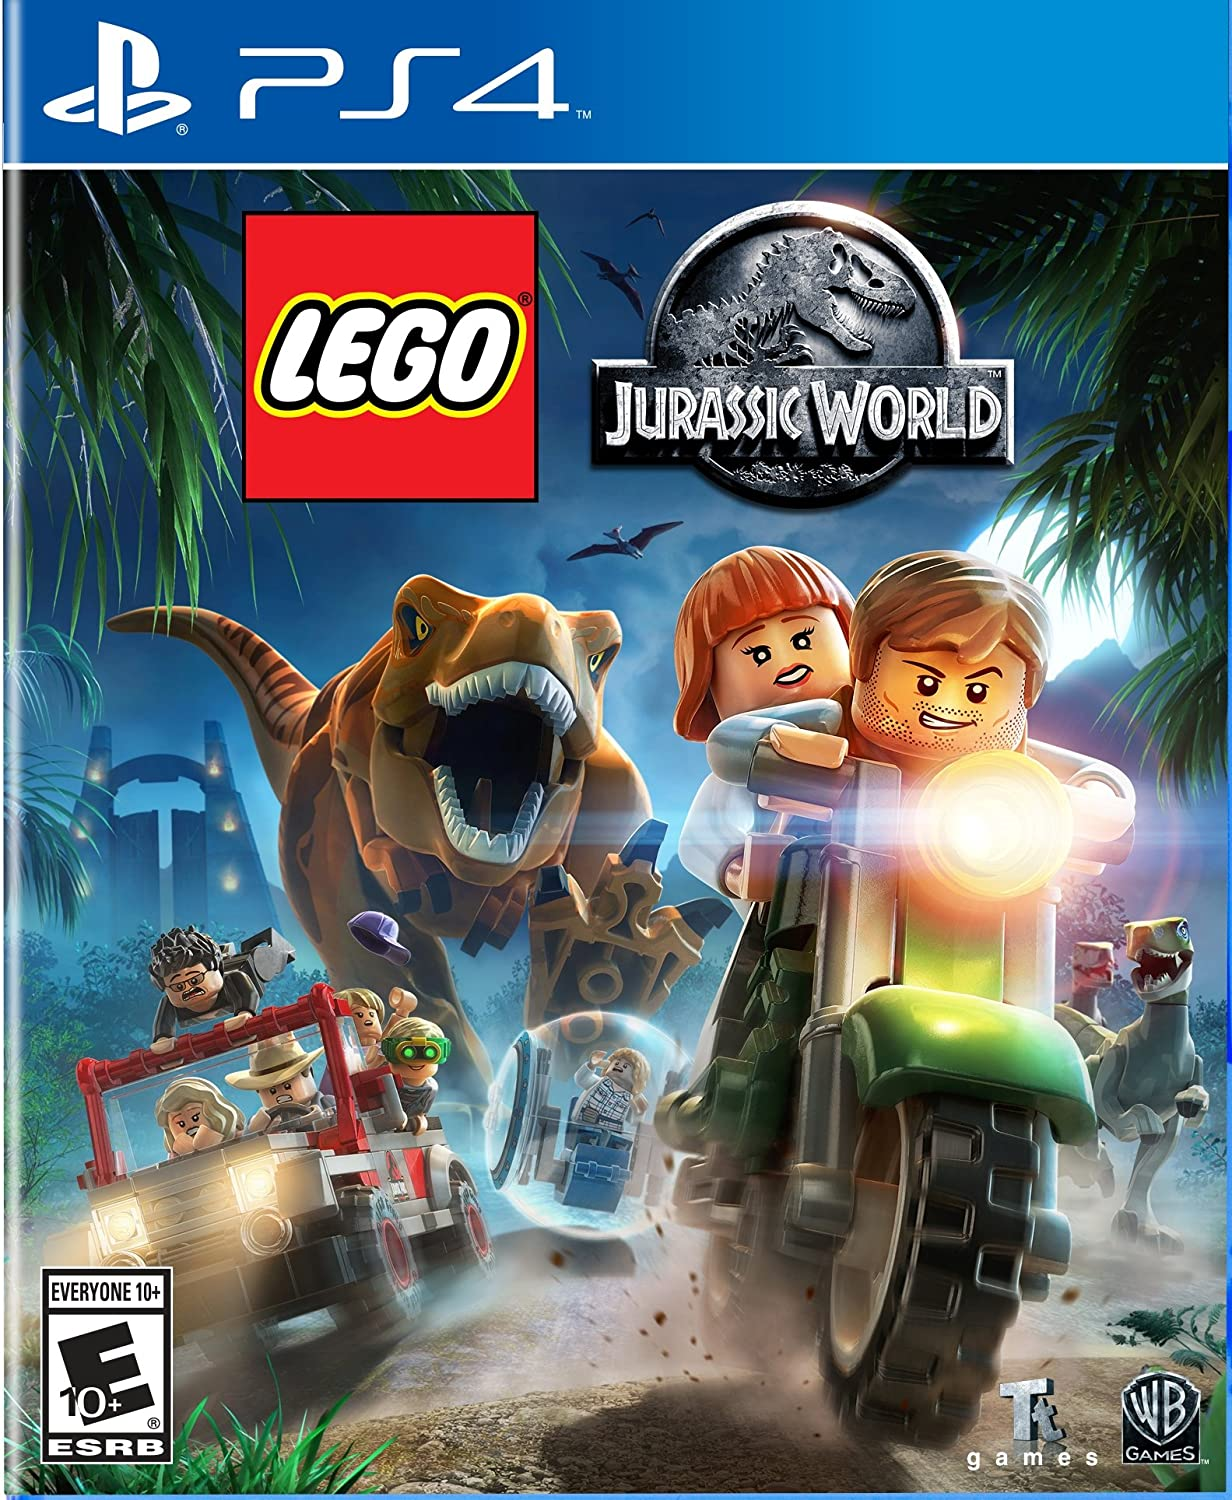 Lego-Jurassic-World-Game-PS4-XBox-Wii-U-PS3-3DS-PSVita